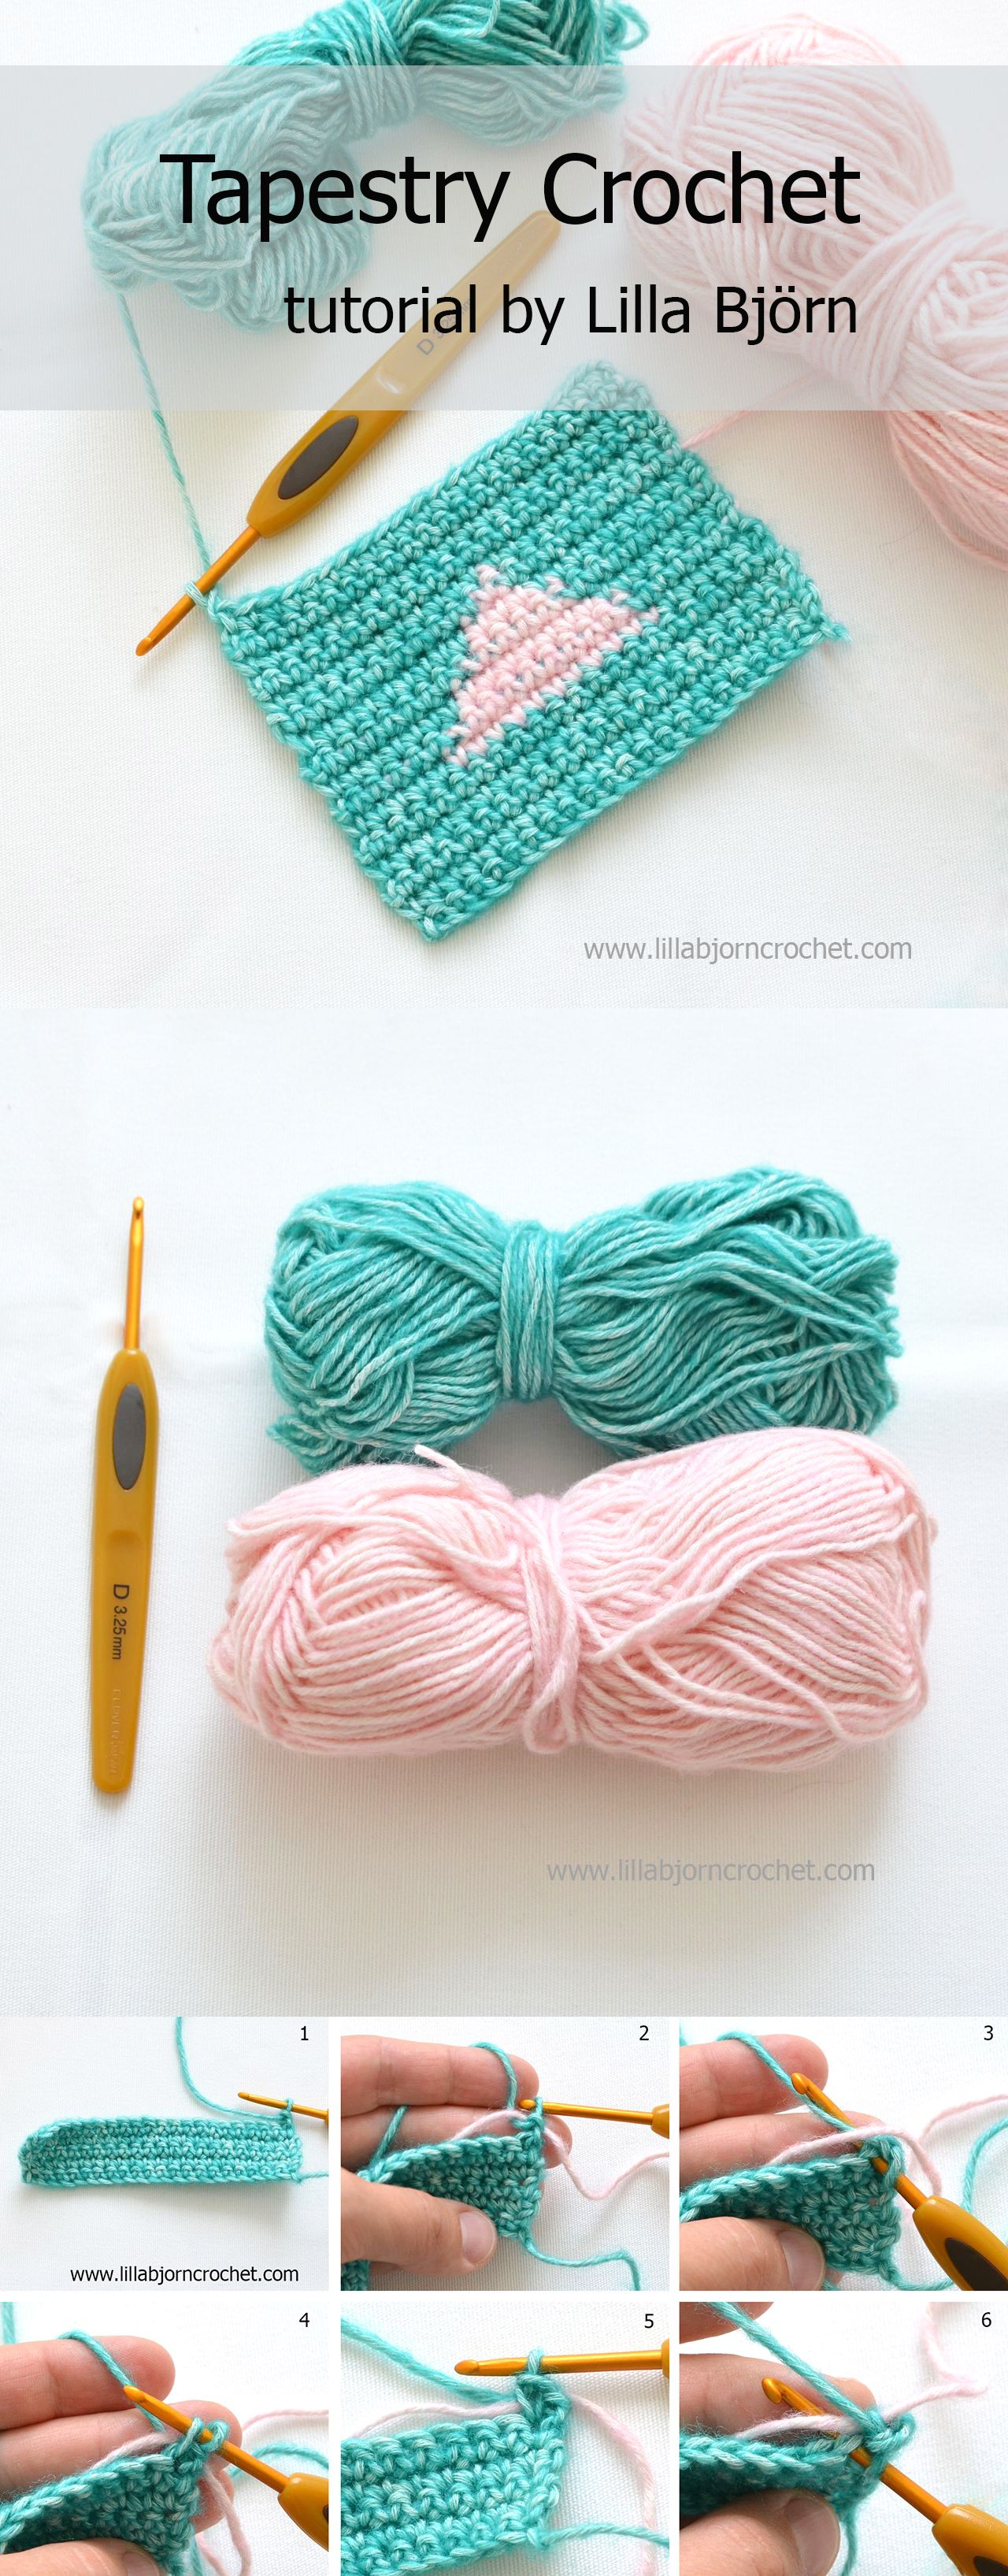 How to do Tapestry Crochet: step-by-step photo tutorial